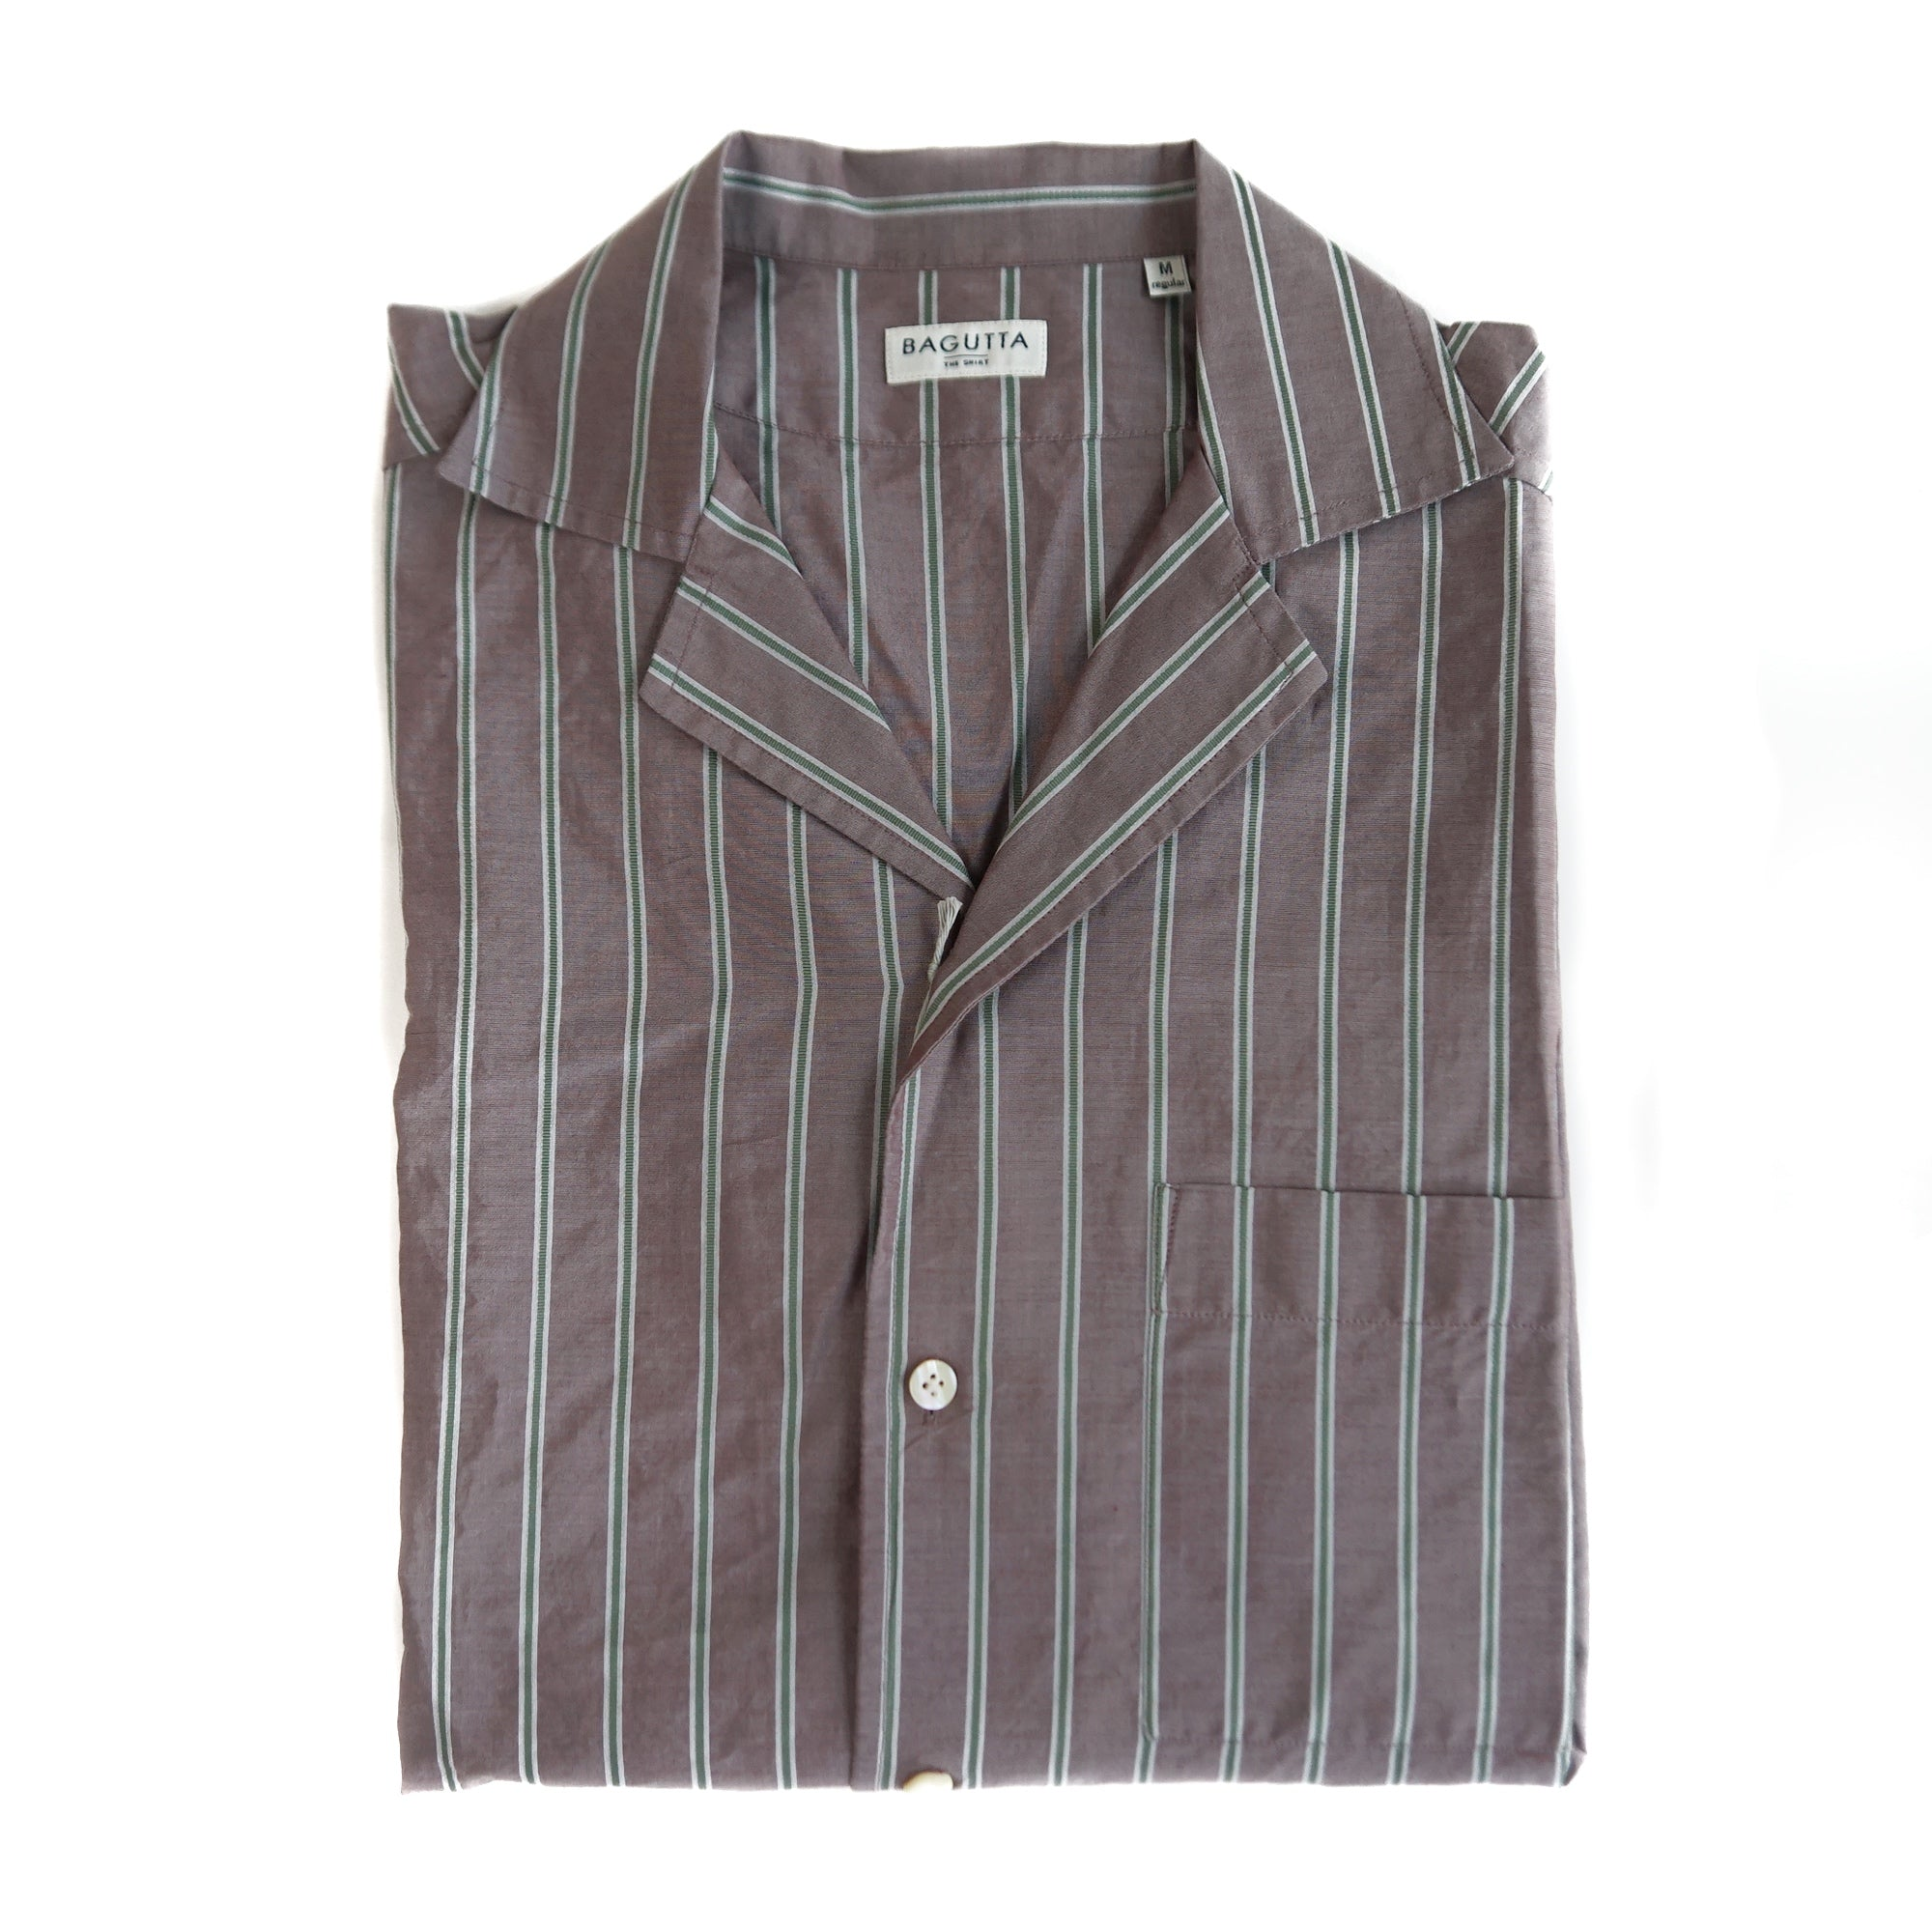 Bagutta Open Collar Shirt ; ALOHAK